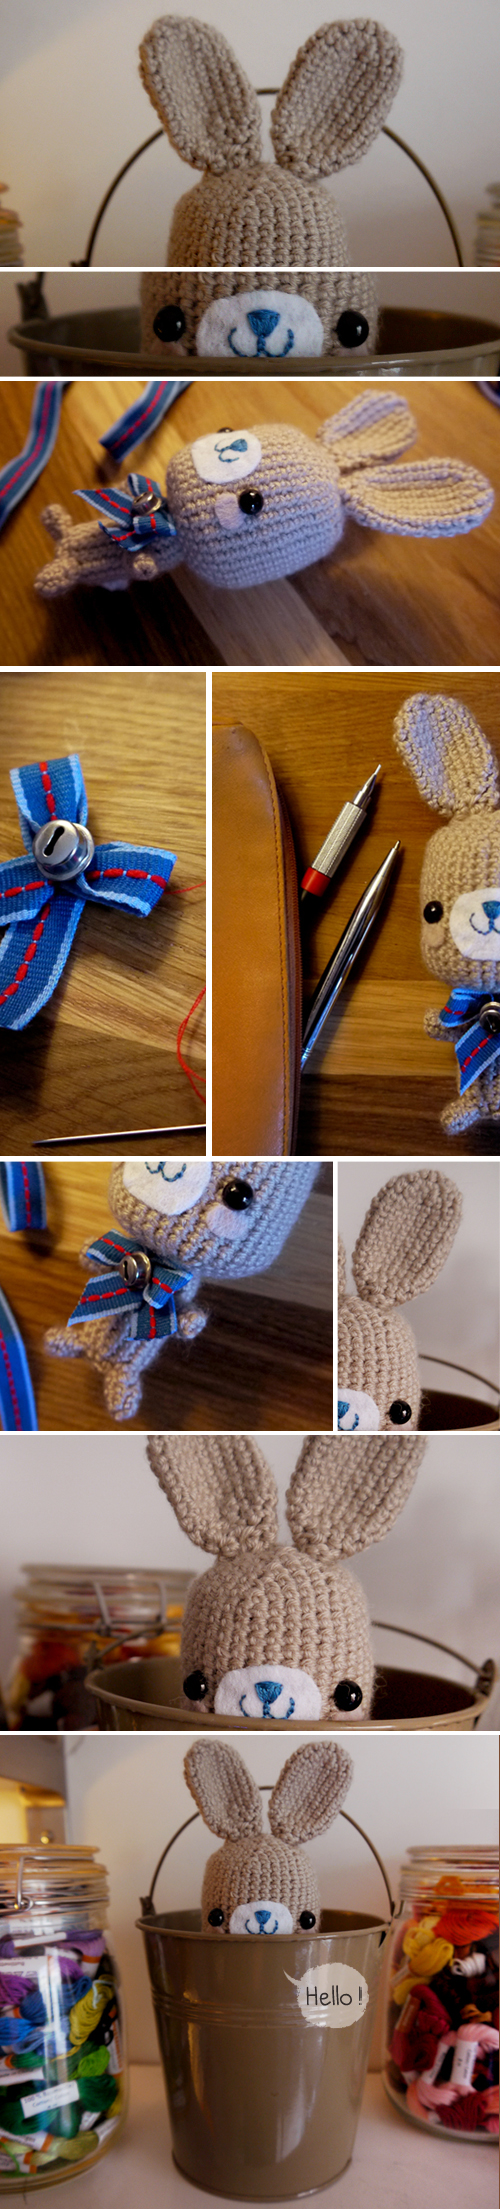 I've crocheted this cute little bunny for a friend (: